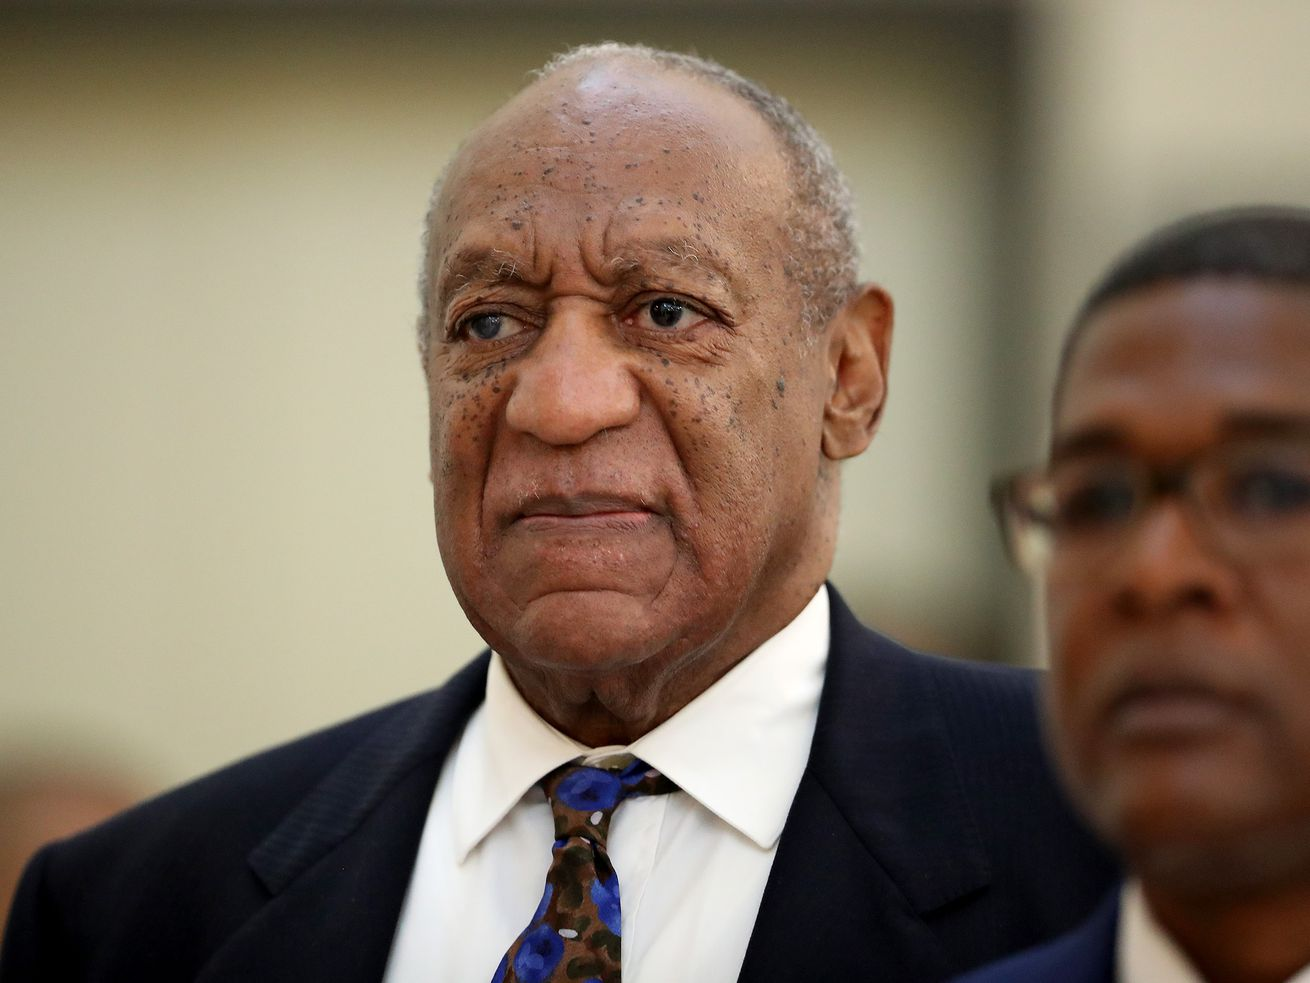 Bill Cosby during his sentencing hearing on September 24, 2018, in Pennsylvania. Cosby was sentenced to three to 10 years in state prison on Tuesday.